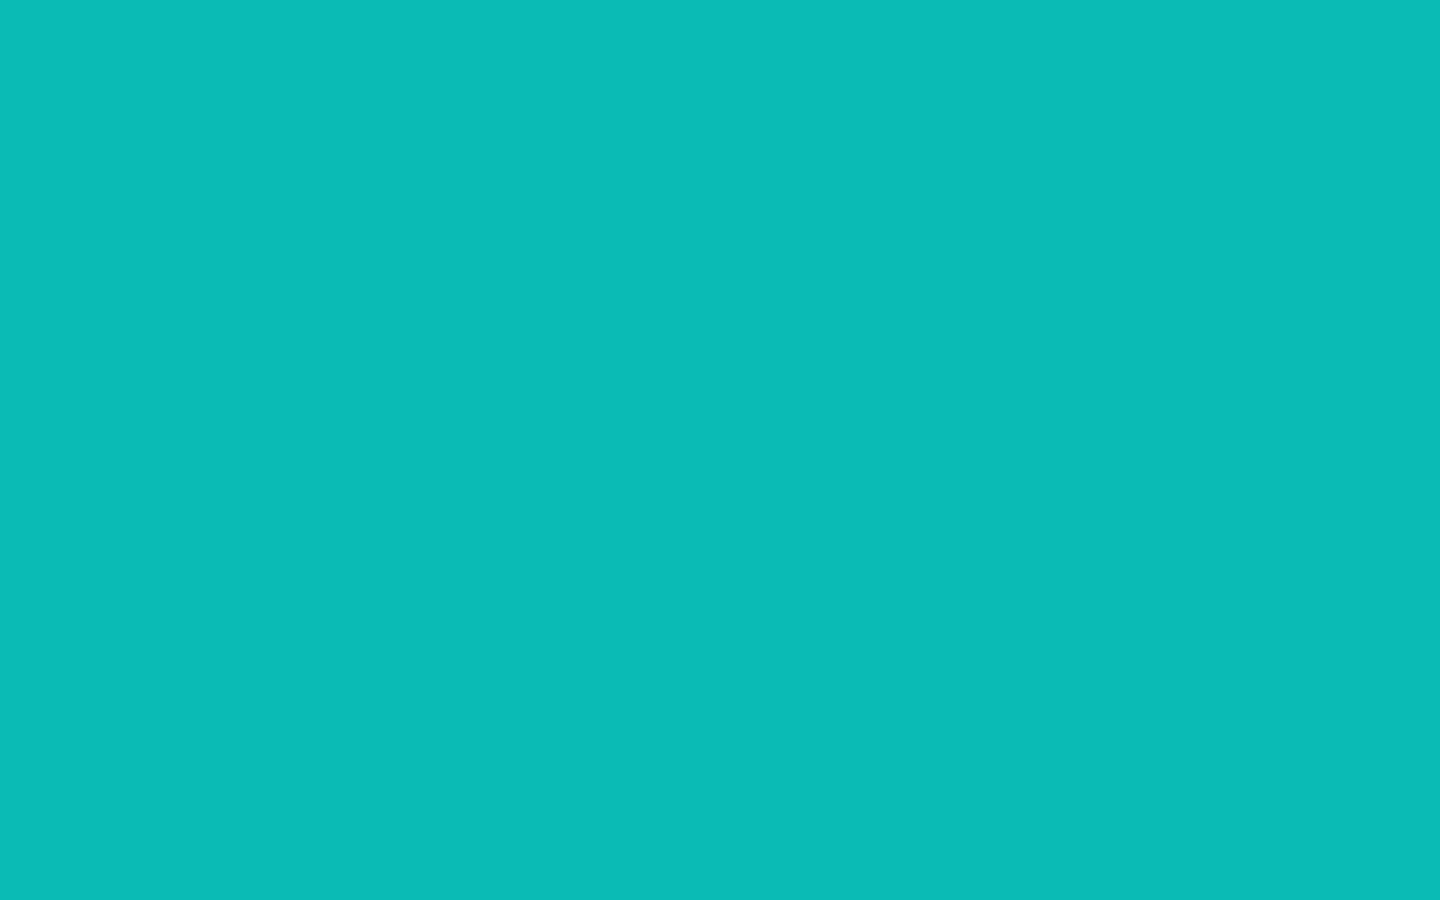 1440x900 Tiffany Blue Solid Color Background